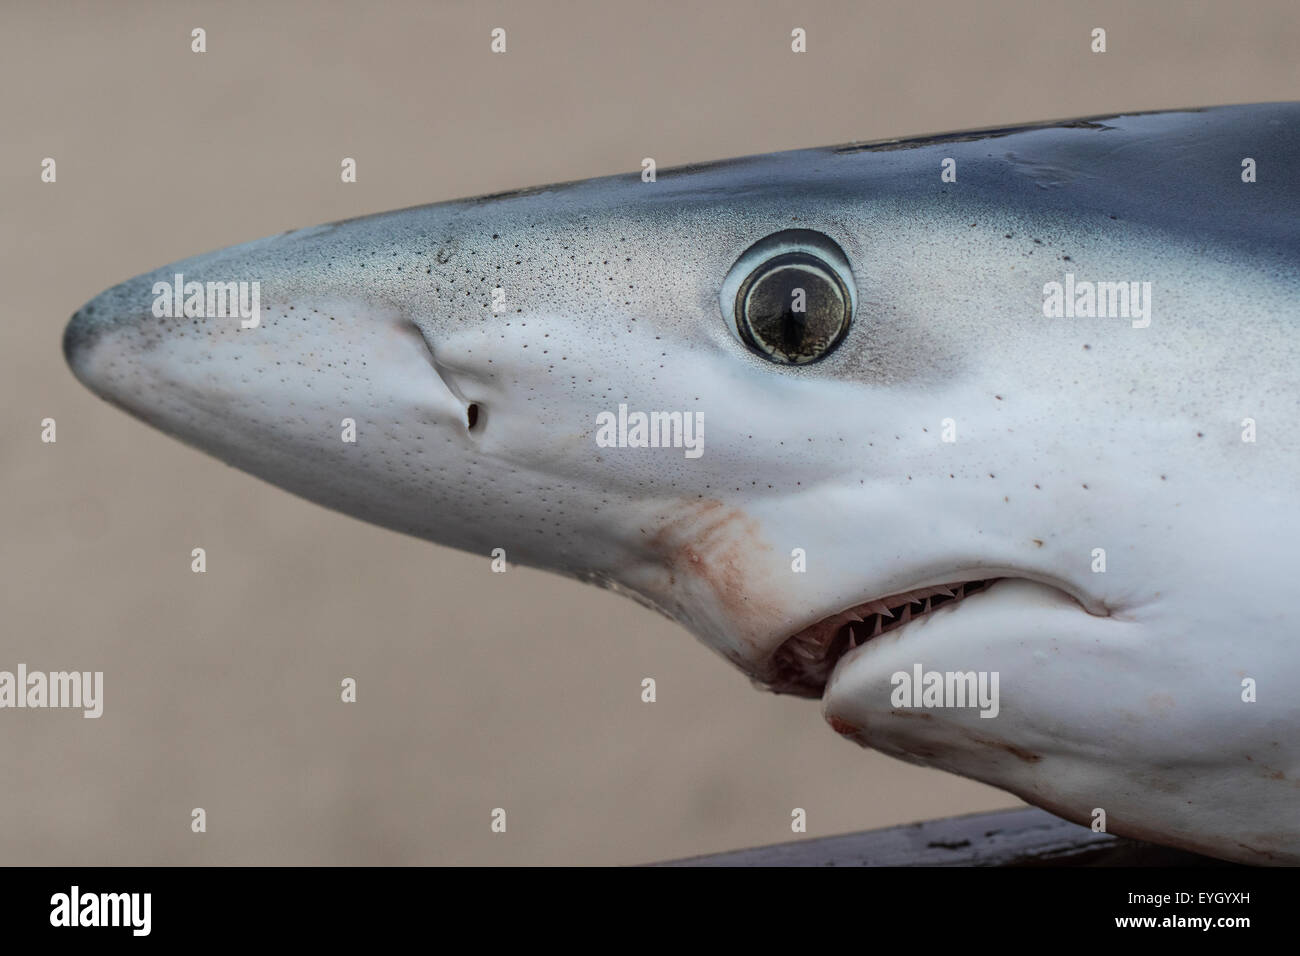 Close-up of a Blue Shark (Prionace glauca) caught as part of a scientific tagging programme, Isles of Scilly, Cornwall Stock Photo